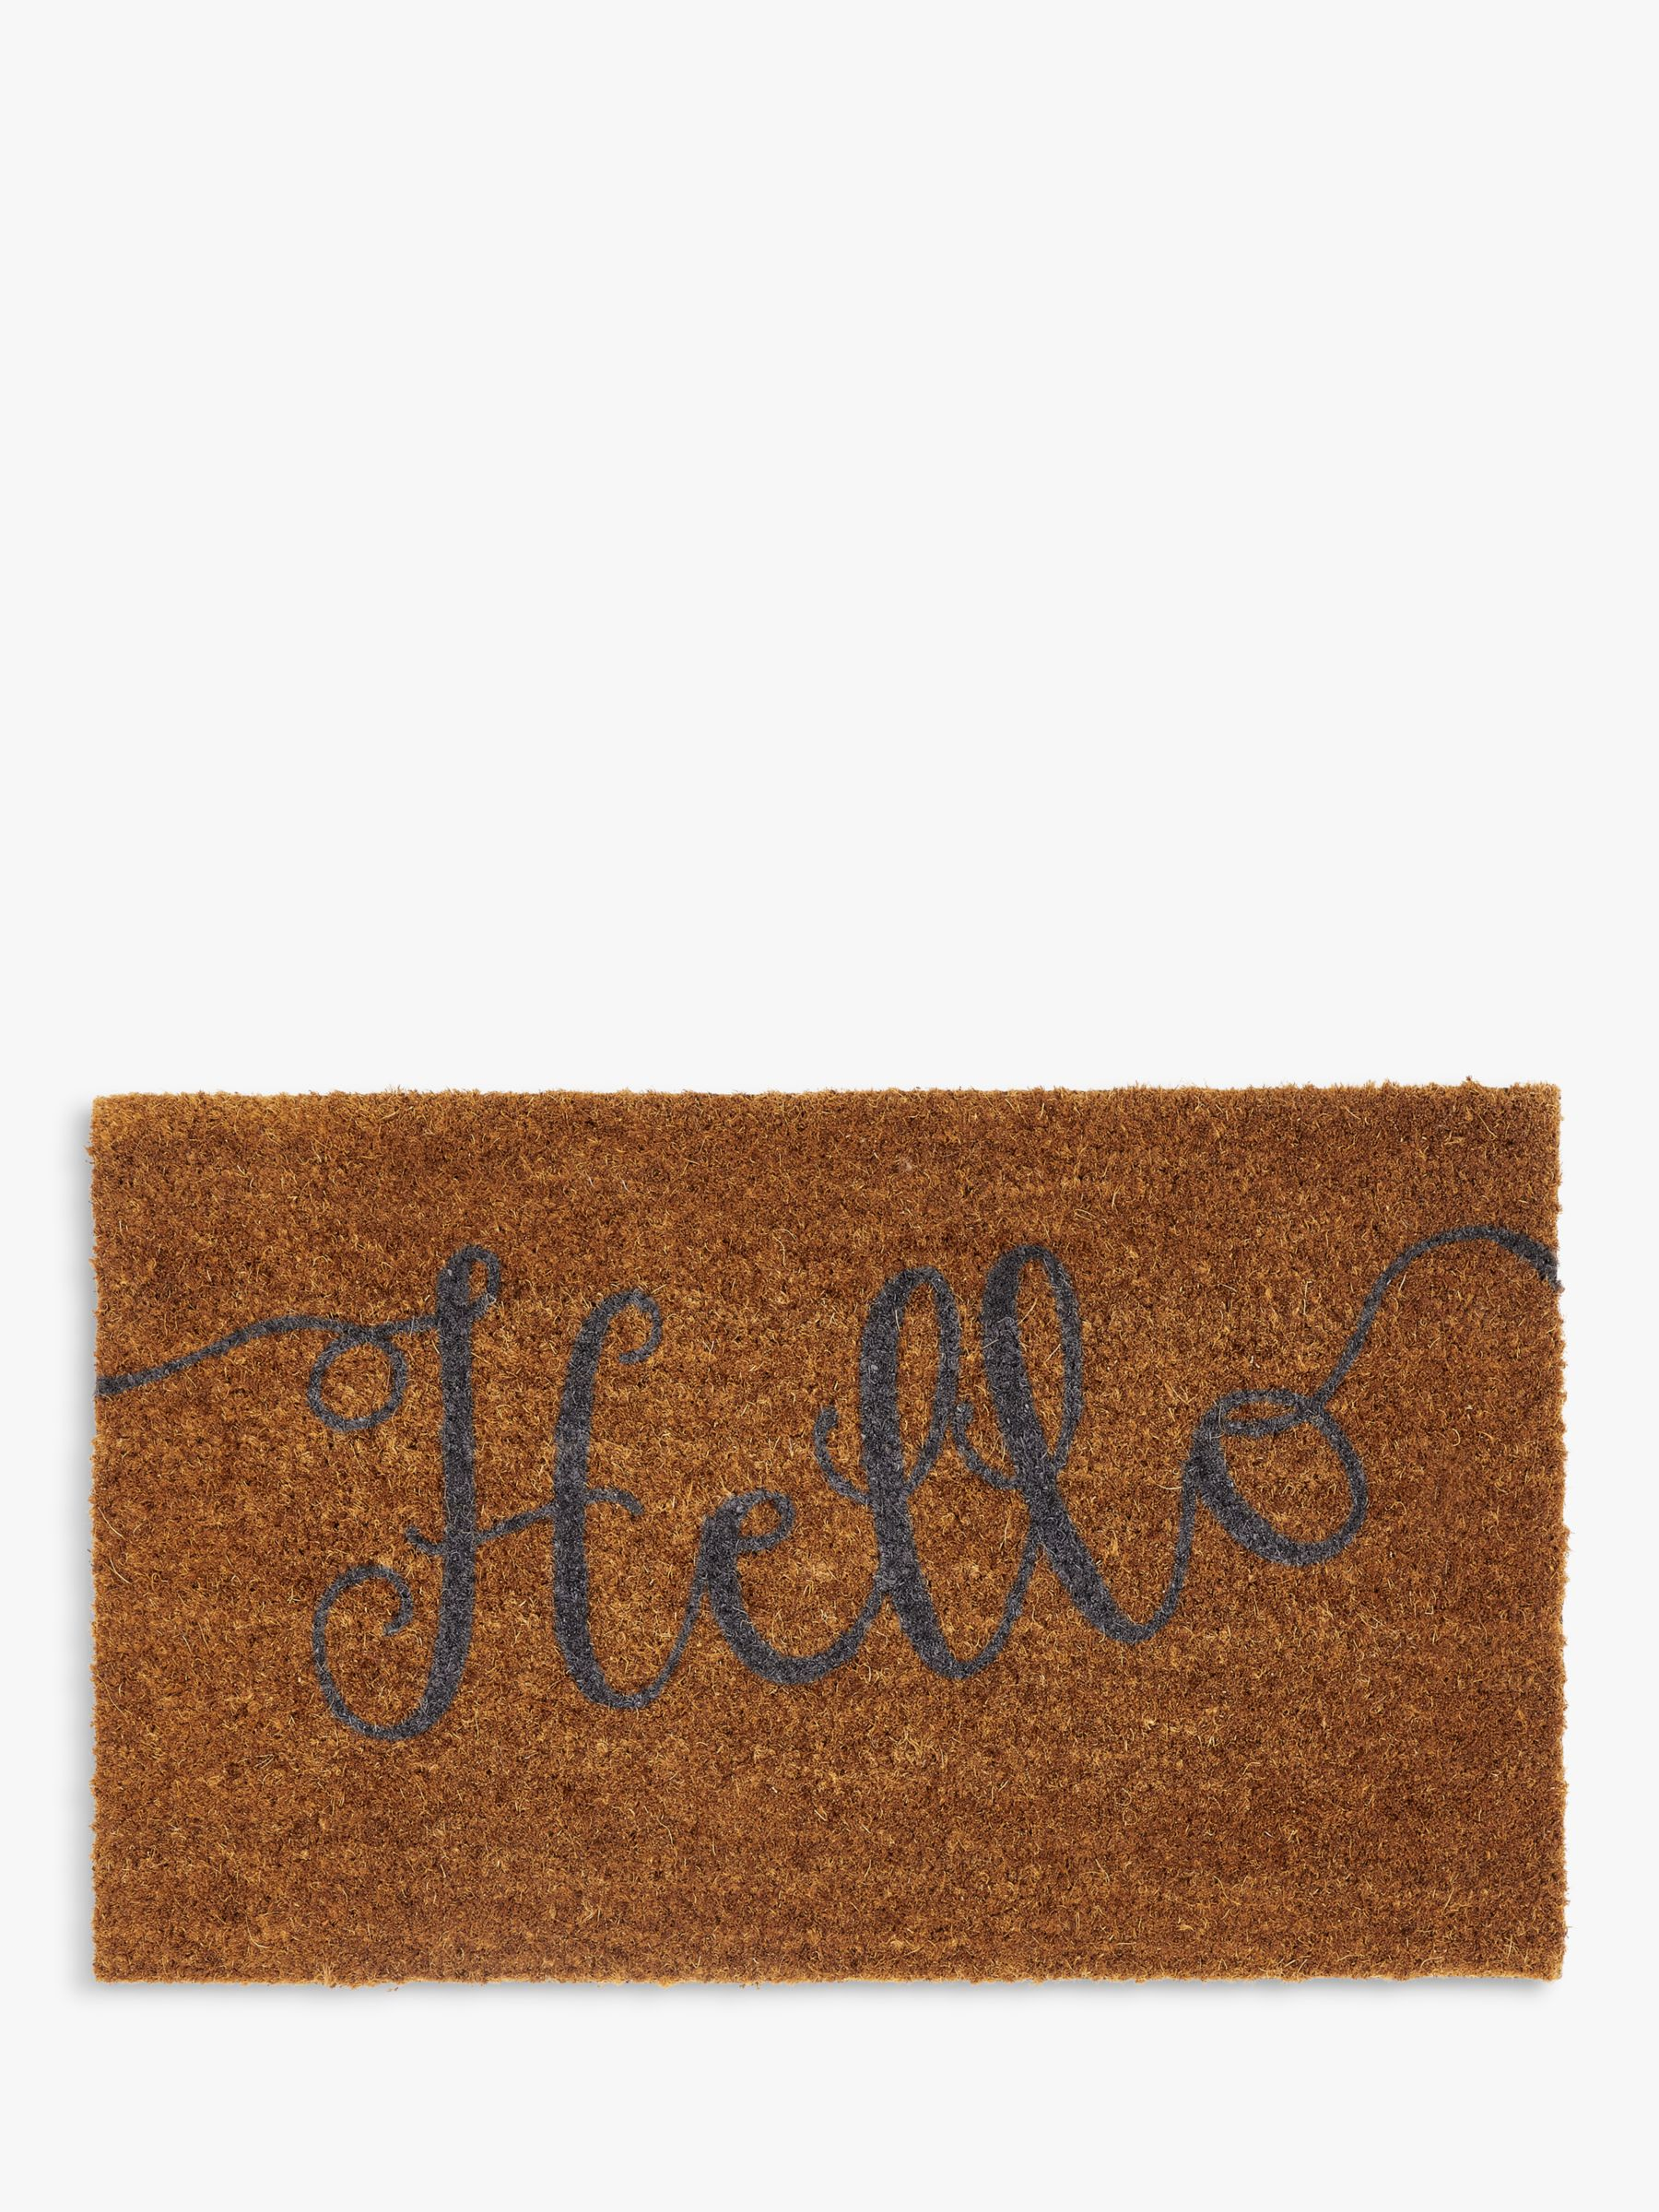 first elegant products copper double mats rubber mat welcome door impression iron finished large